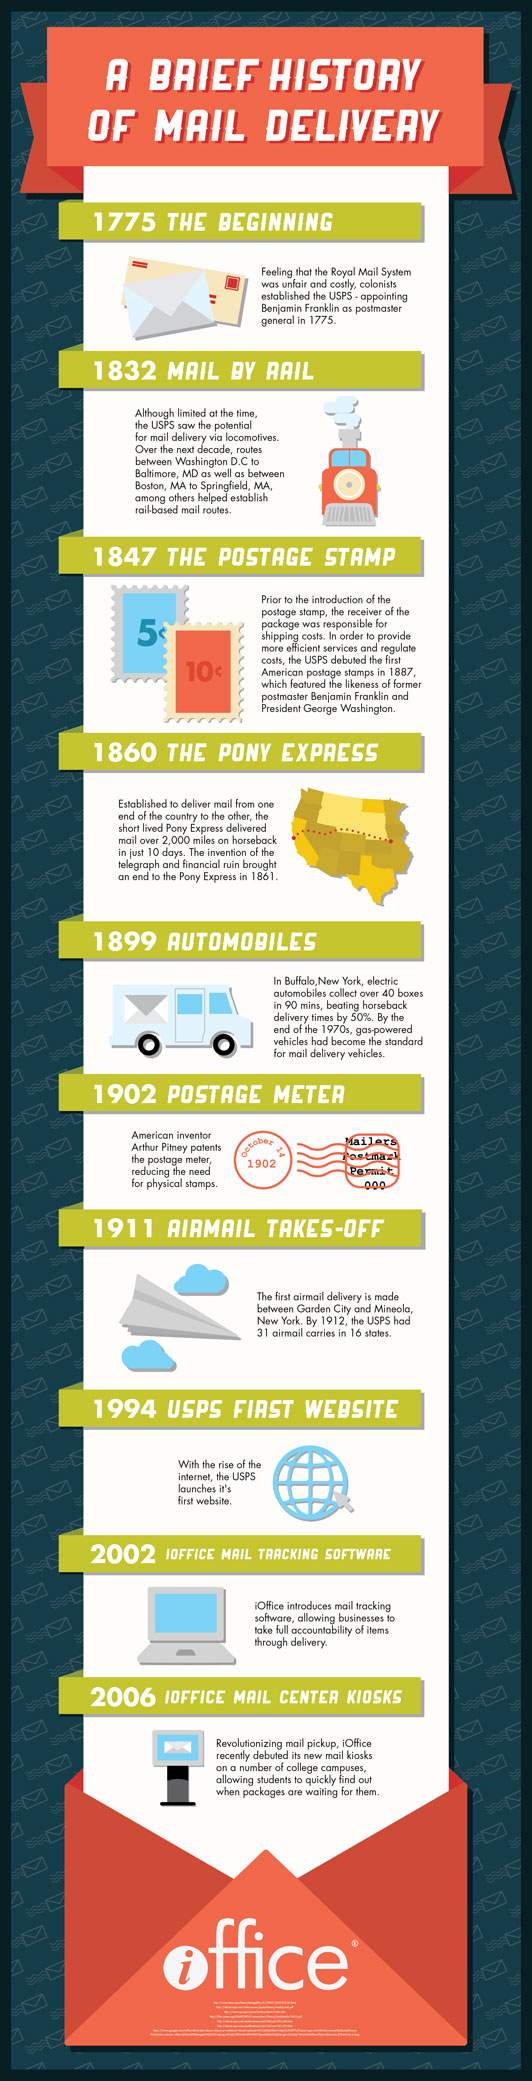 Infographic: The Evolution of Mail Delivery